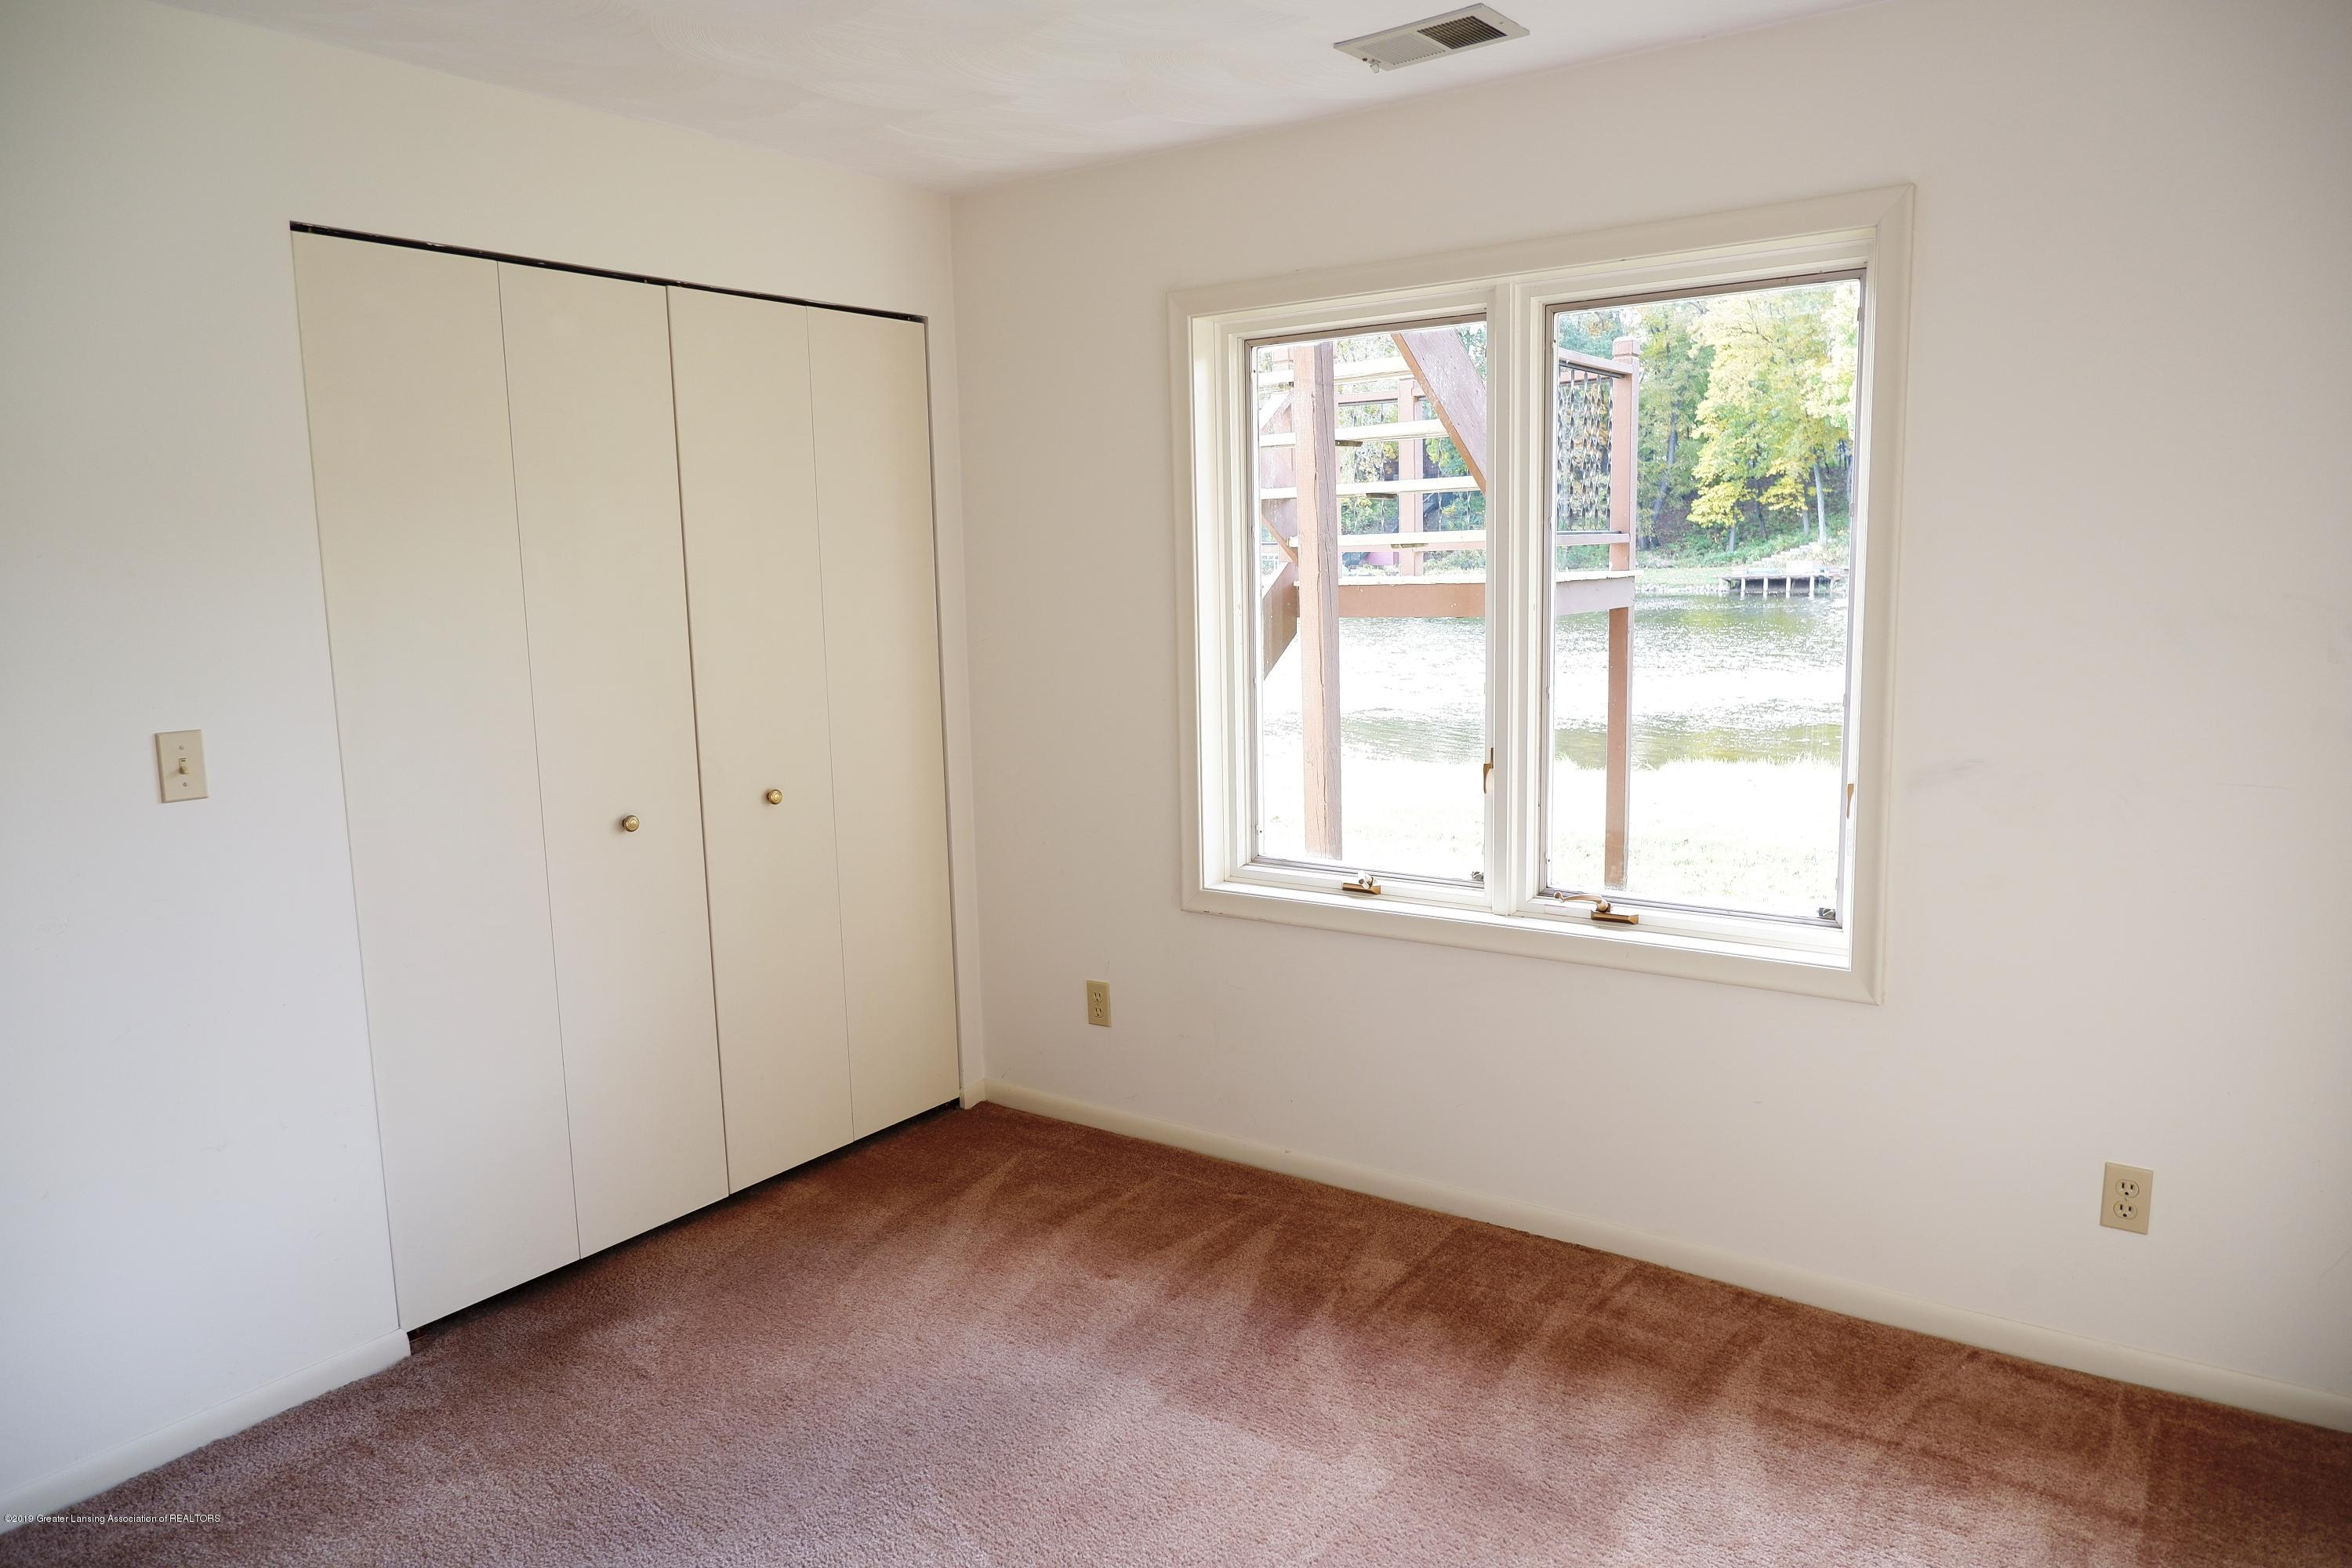 8933 W Scenic Lake Dr - 2nd bedroom-LL - 34